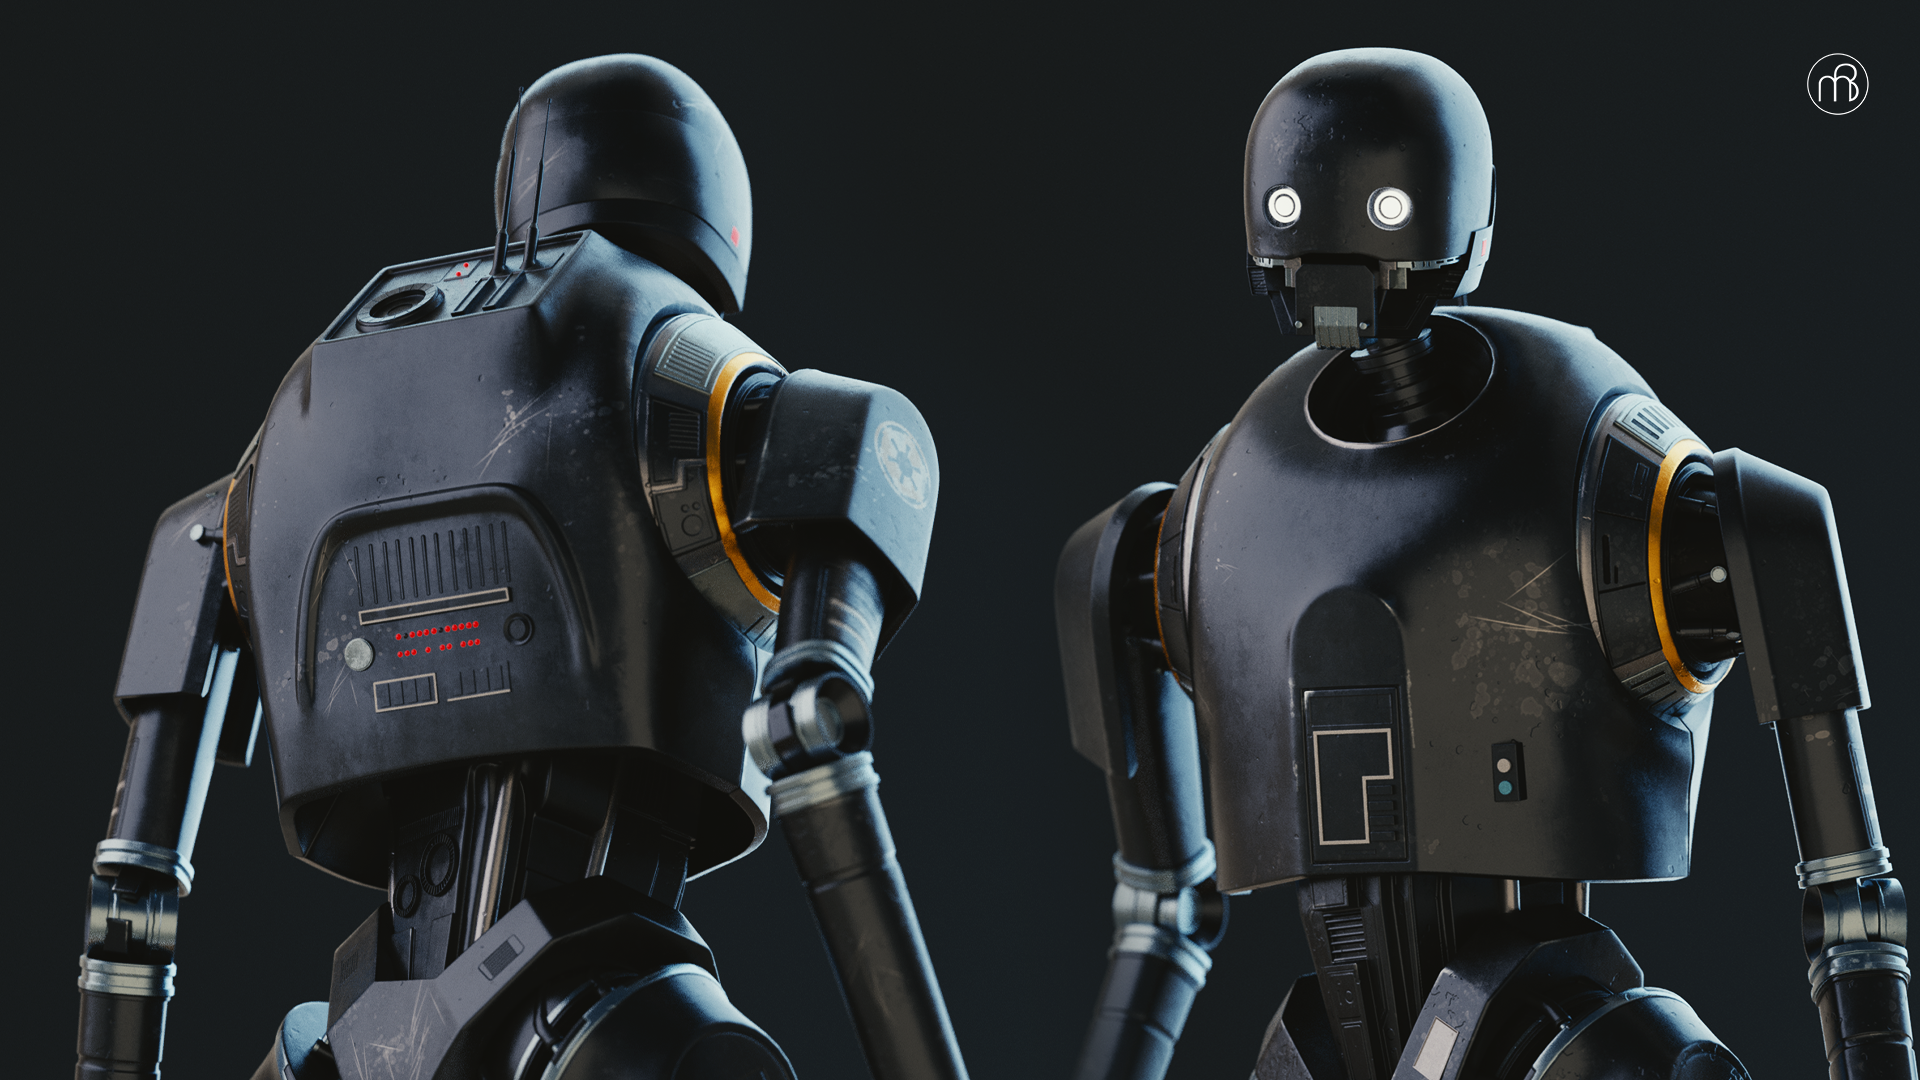 3D render of K-2SO from Star Wars